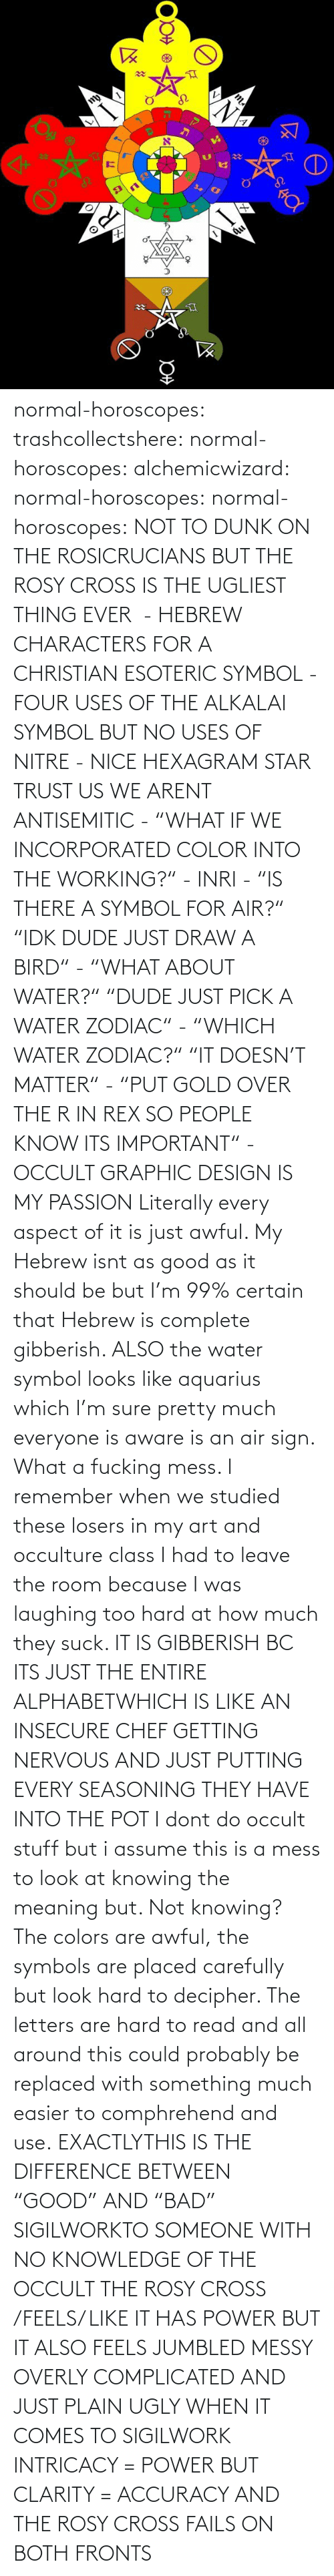 "Could: normal-horoscopes:  trashcollectshere: normal-horoscopes:   alchemicwizard:  normal-horoscopes:  normal-horoscopes: NOT TO DUNK ON THE ROSICRUCIANS BUT THE ROSY CROSS IS THE UGLIEST THING EVER  - HEBREW CHARACTERS FOR A CHRISTIAN ESOTERIC SYMBOL - FOUR USES OF THE ALKALAI SYMBOL BUT NO USES OF NITRE - NICE HEXAGRAM STAR TRUST US WE ARENT ANTISEMITIC - ""WHAT IF WE INCORPORATED COLOR INTO THE WORKING?"" - INRI - ""IS THERE A SYMBOL FOR AIR?"" ""IDK DUDE JUST DRAW A BIRD"" - ""WHAT ABOUT WATER?"" ""DUDE JUST PICK A WATER ZODIAC"" - ""WHICH WATER ZODIAC?"" ""IT DOESN'T MATTER"" - ""PUT GOLD OVER THE R IN REX SO PEOPLE KNOW ITS IMPORTANT"" - OCCULT GRAPHIC DESIGN IS MY PASSION  Literally every aspect of it is just awful. My Hebrew isnt as good as it should be but I'm 99% certain that Hebrew is complete gibberish.  ALSO the water symbol looks like aquarius which I'm sure pretty much everyone is aware is an air sign. What a fucking mess.  I remember when we studied these losers in my art and occulture class I had to leave the room because I was laughing too hard at how much they suck.   IT IS GIBBERISH BC ITS JUST THE ENTIRE ALPHABETWHICH IS LIKE AN INSECURE CHEF GETTING NERVOUS AND JUST PUTTING EVERY SEASONING THEY HAVE INTO THE POT     I dont do occult stuff but i assume this is a mess to look at knowing the meaning but. Not knowing? The colors are awful, the symbols are placed carefully but look hard to decipher. The letters are hard to read and all around this could probably be replaced with something much easier to comphrehend and use.  EXACTLYTHIS IS THE DIFFERENCE BETWEEN ""GOOD"" AND ""BAD"" SIGILWORKTO SOMEONE WITH NO KNOWLEDGE OF THE OCCULT THE ROSY CROSS /FEELS/ LIKE IT HAS POWER BUT IT ALSO FEELS JUMBLED MESSY OVERLY COMPLICATED AND JUST PLAIN UGLY WHEN IT COMES TO SIGILWORK INTRICACY = POWER BUT CLARITY = ACCURACY AND THE ROSY CROSS FAILS ON BOTH FRONTS"